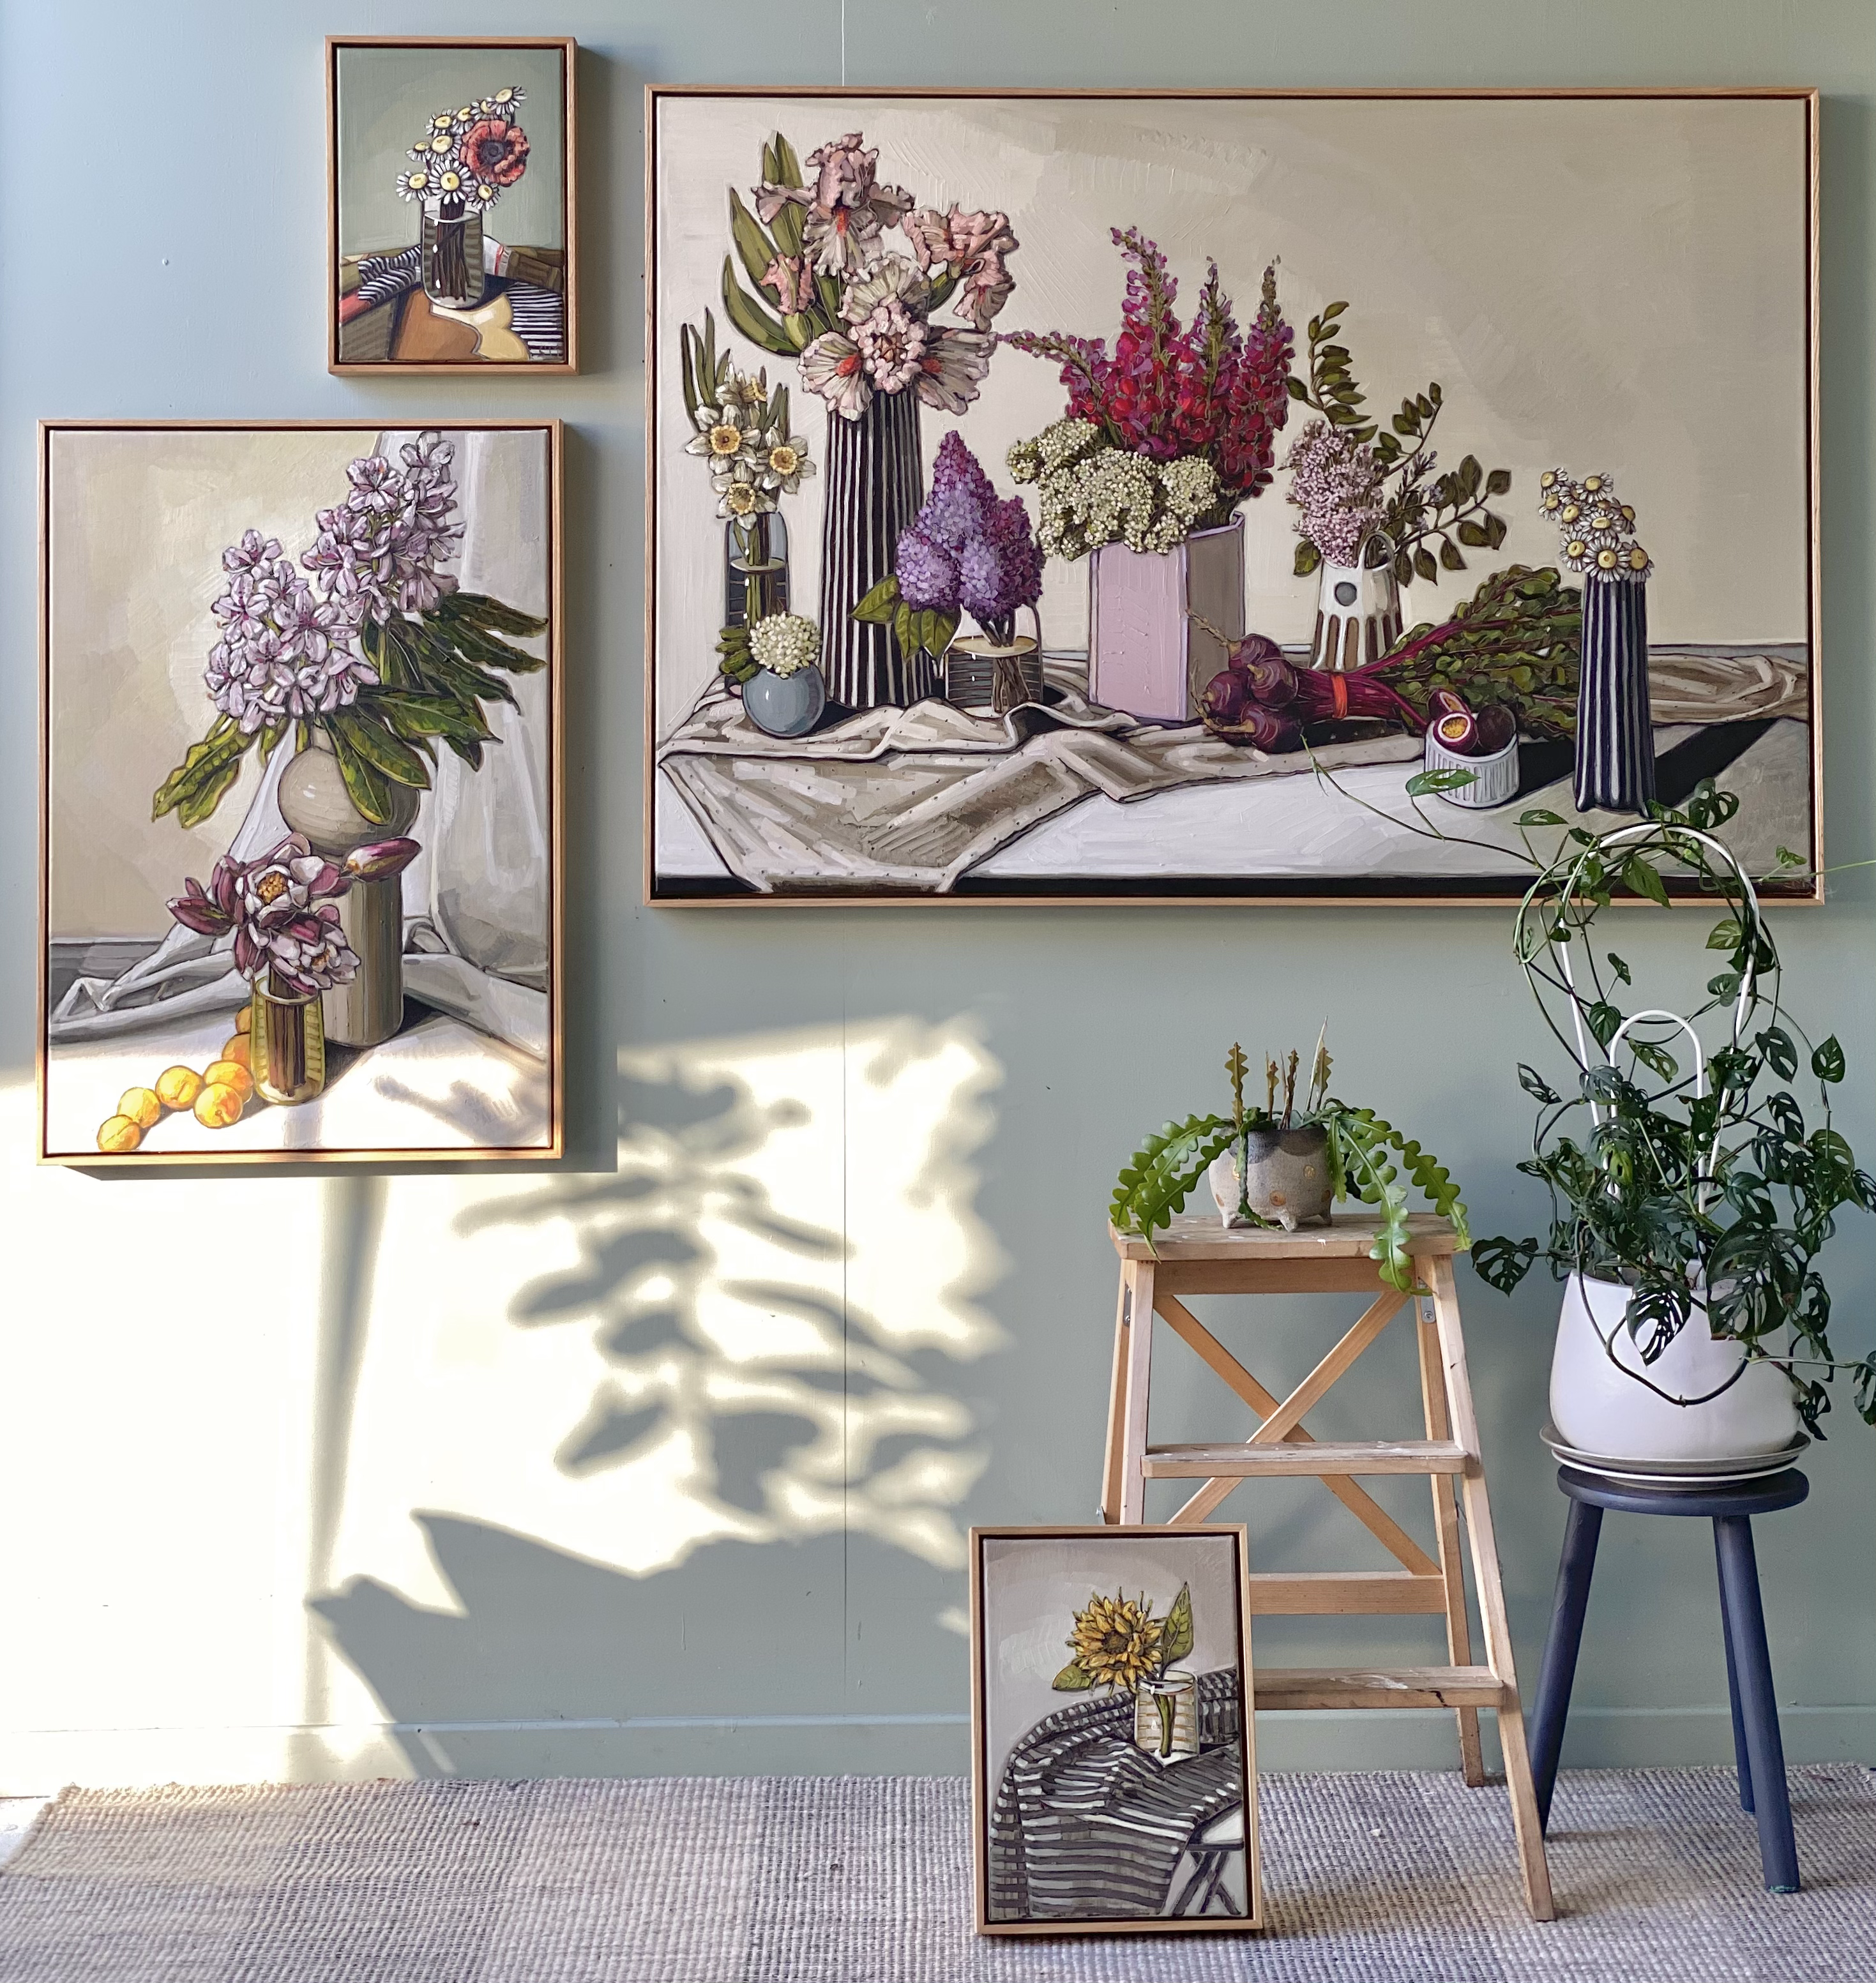 elegance of spring collection in situ 4.